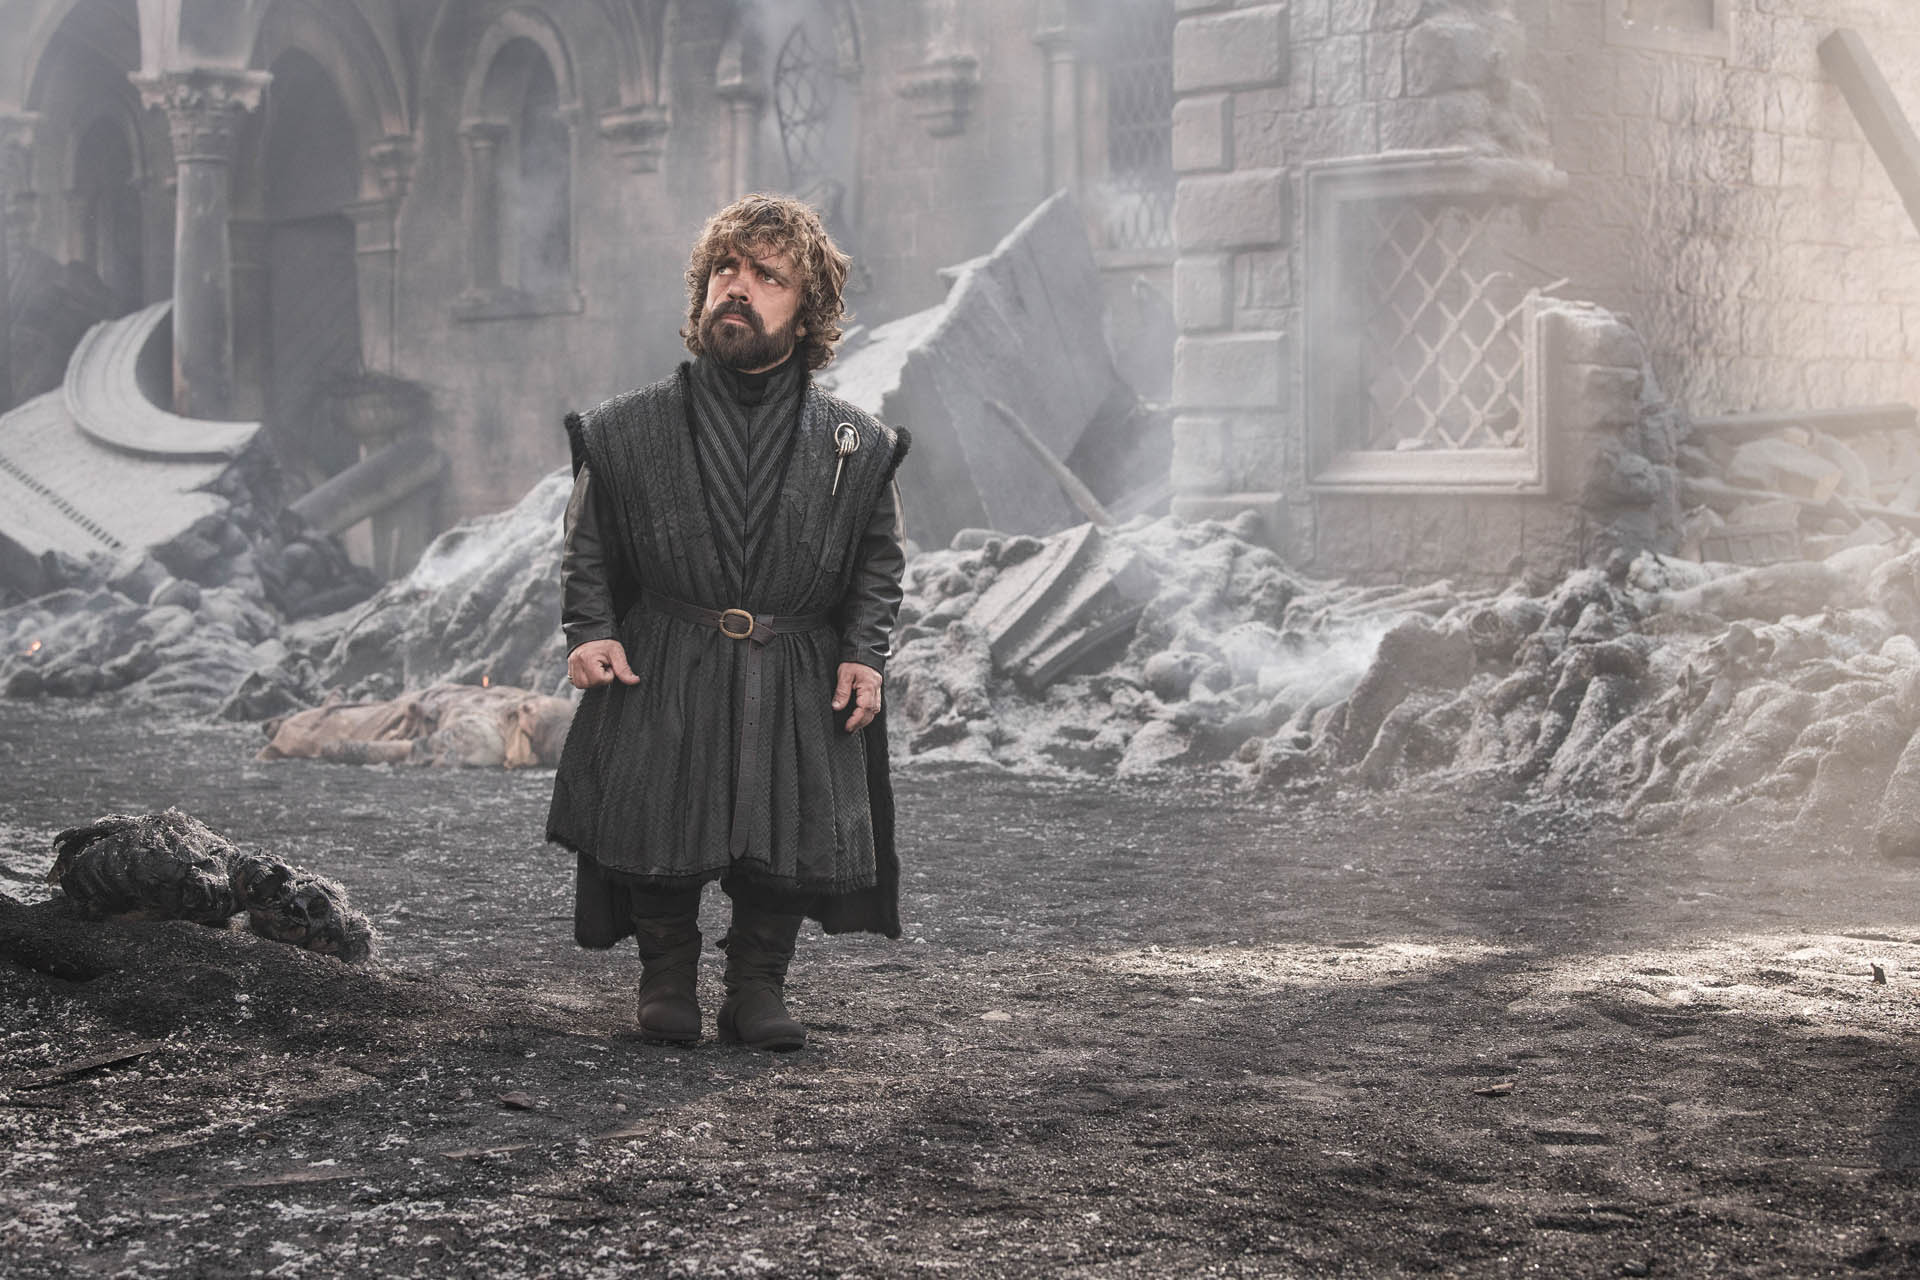 Fire, Blood & Destruction for Game Of Thrones' Final Season